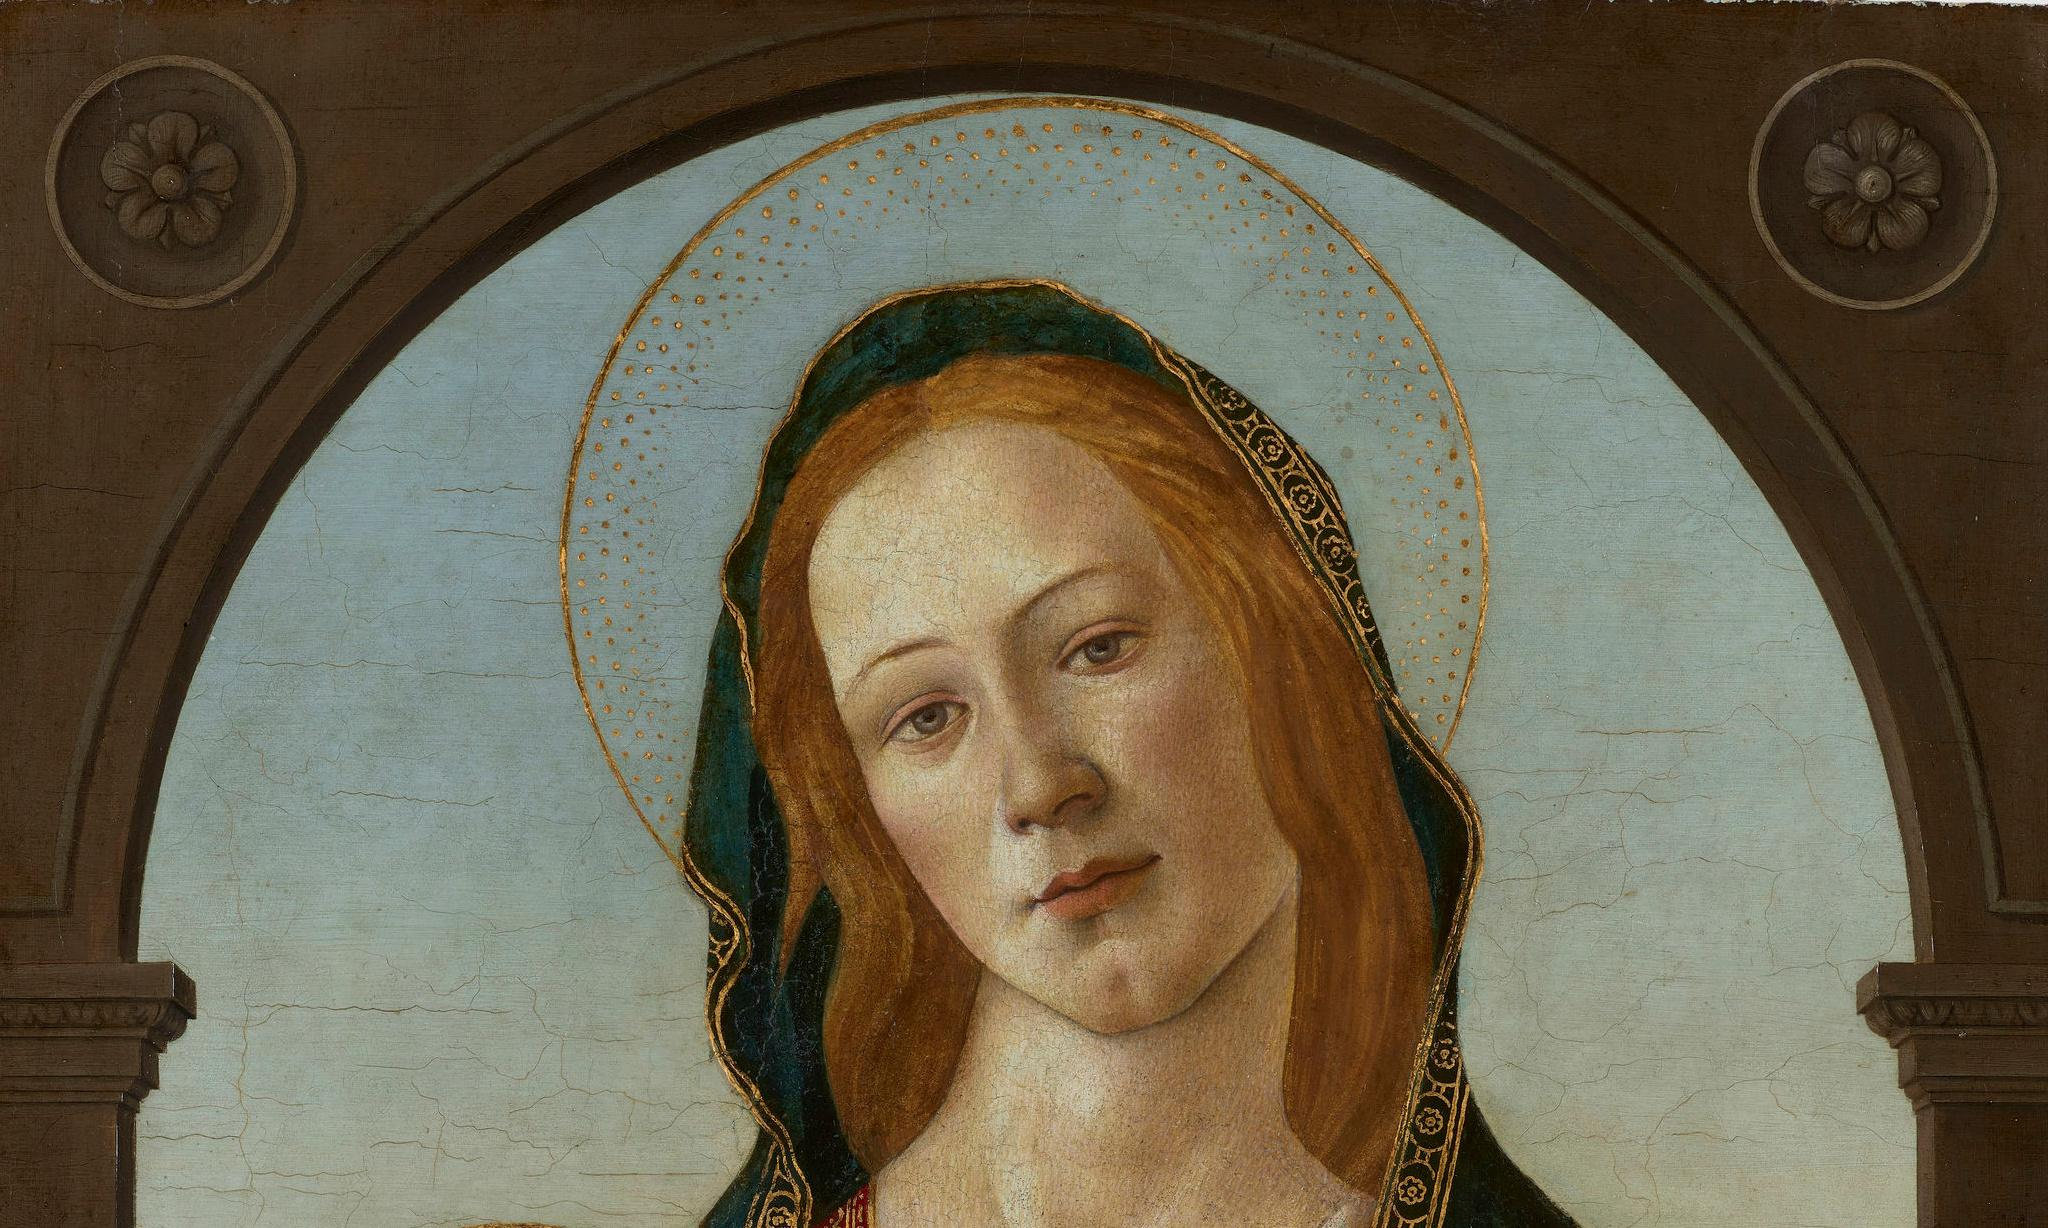 Botticelli 'copy' in Welsh museum is genuine, experts say